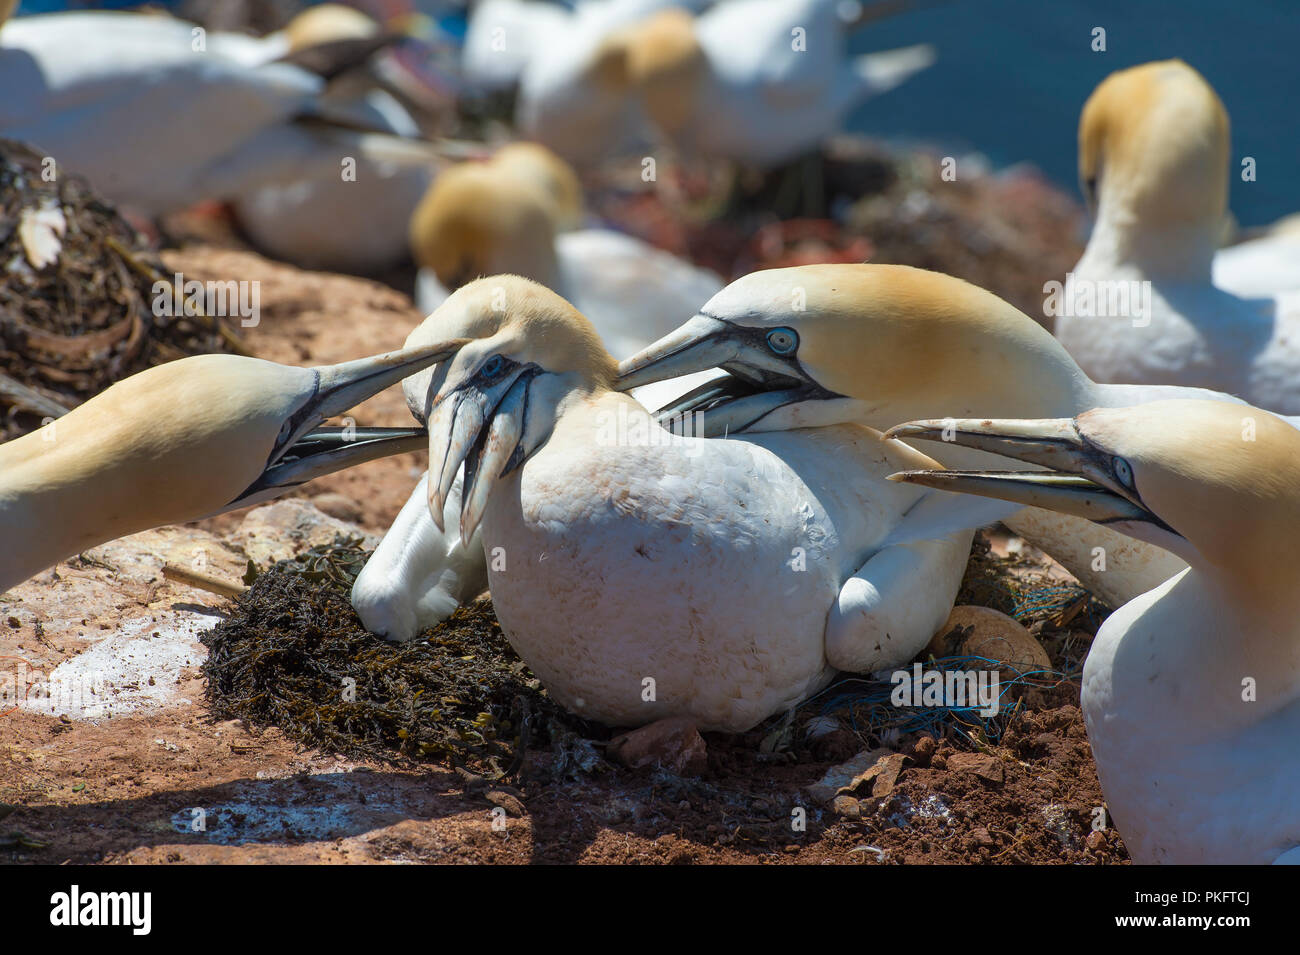 Northern gannet (Morus bassanus), at the nest attacked by neighboring birds, Heligoland, Schleswig-Holstein, Germany - Stock Image